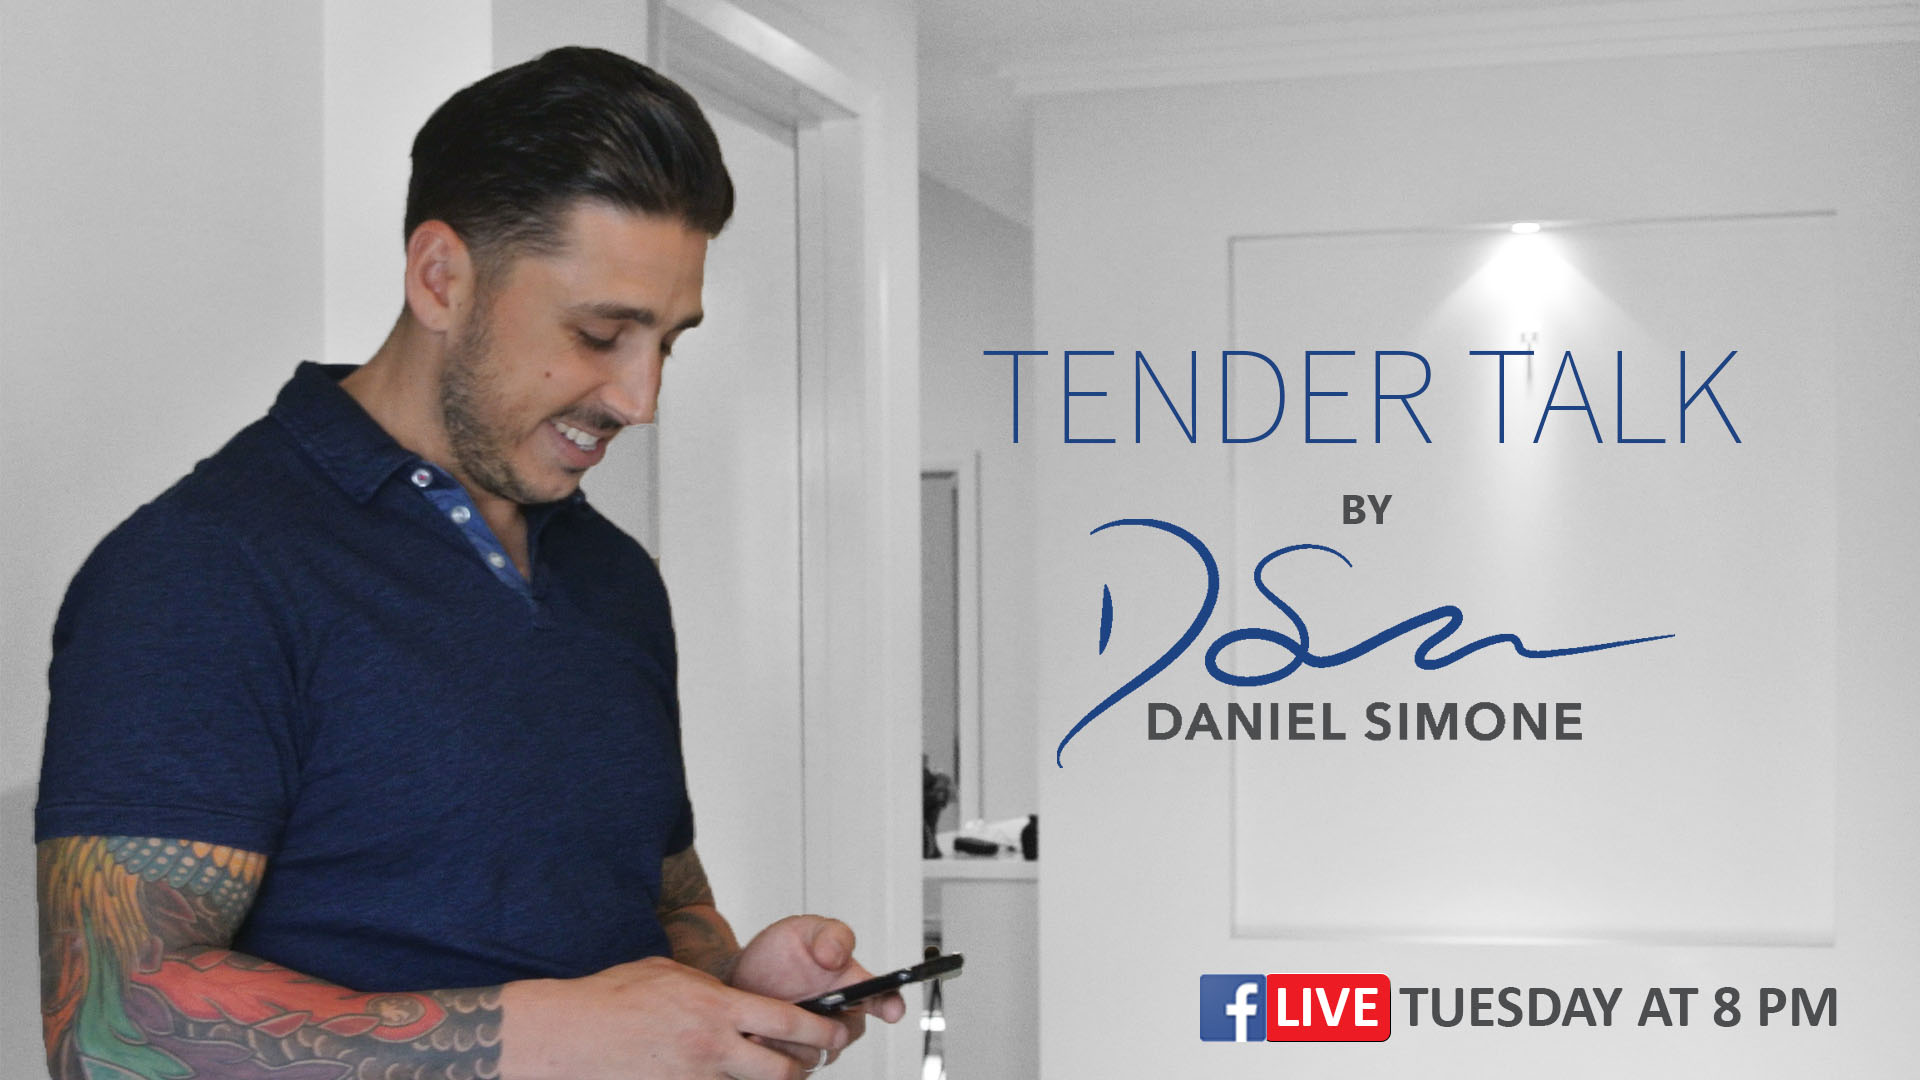 Live Tender Talk TUESDAY